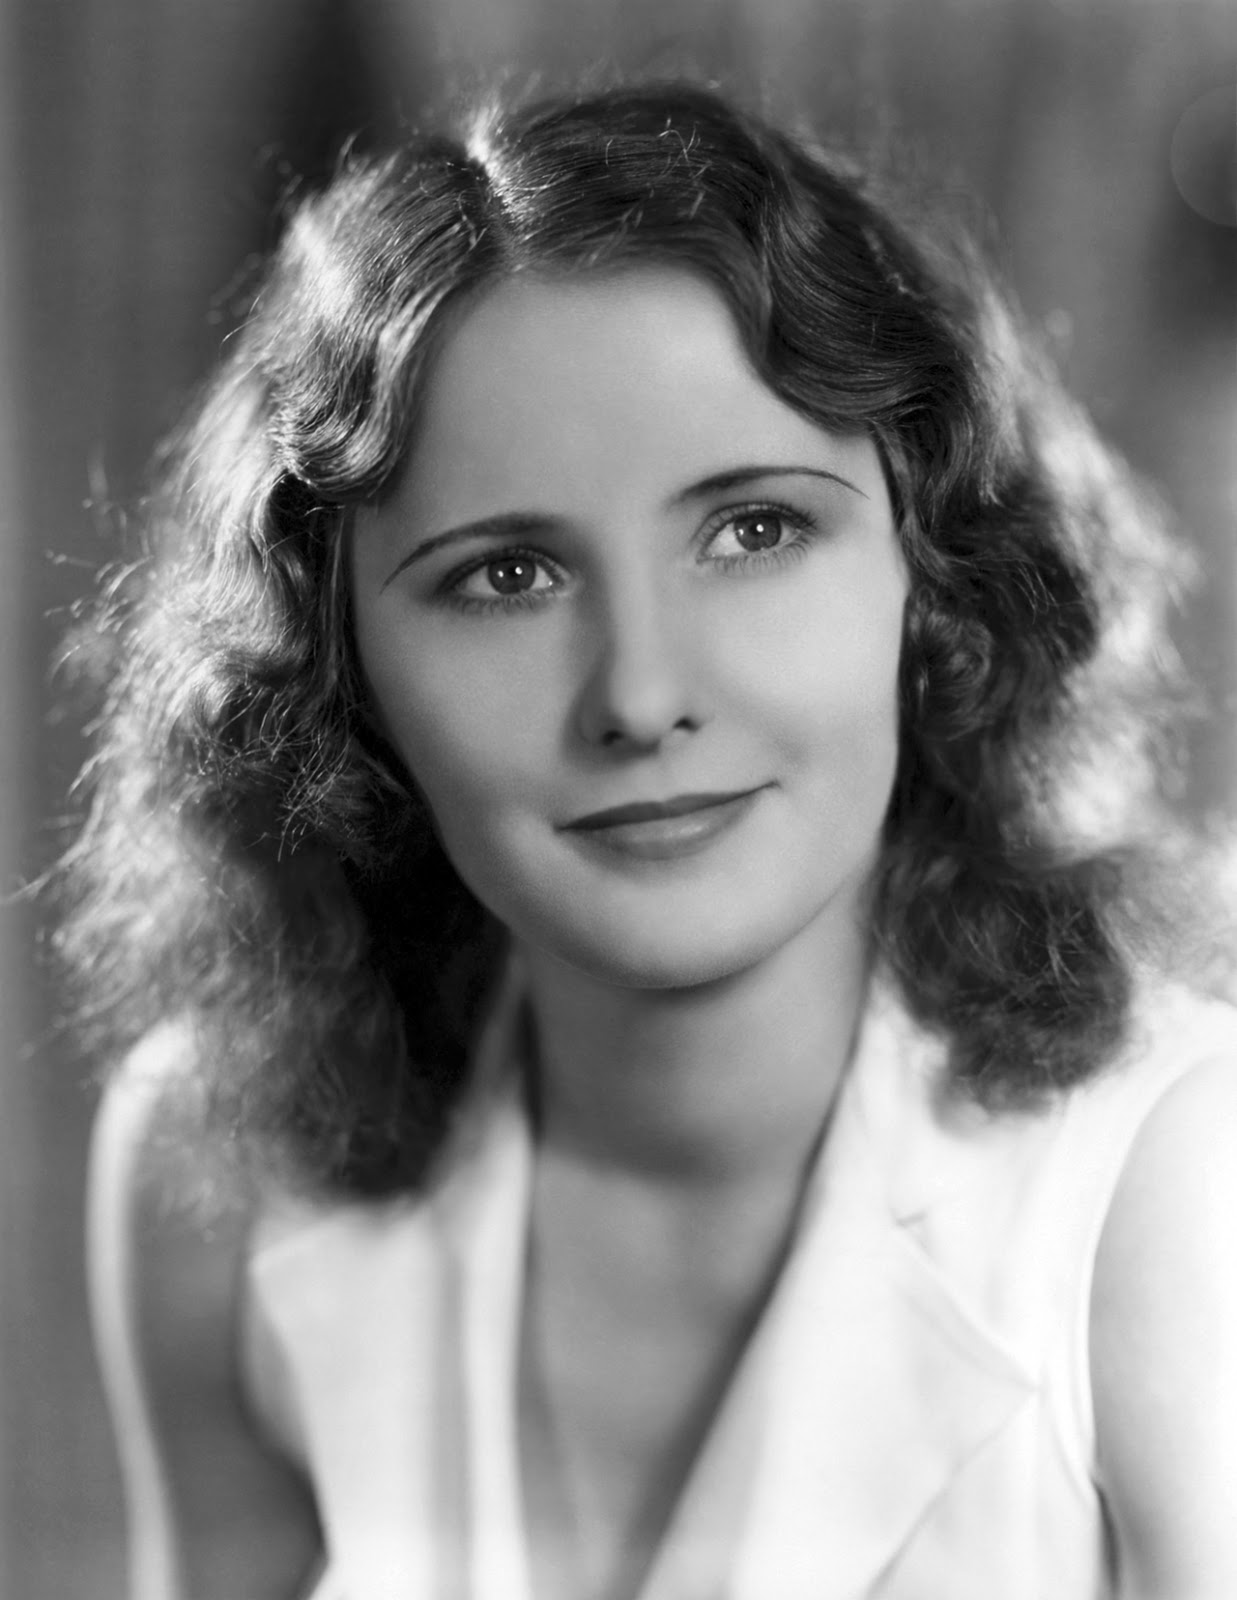 Communication on this topic: Francine Larrimore, barbara-stanwyck/